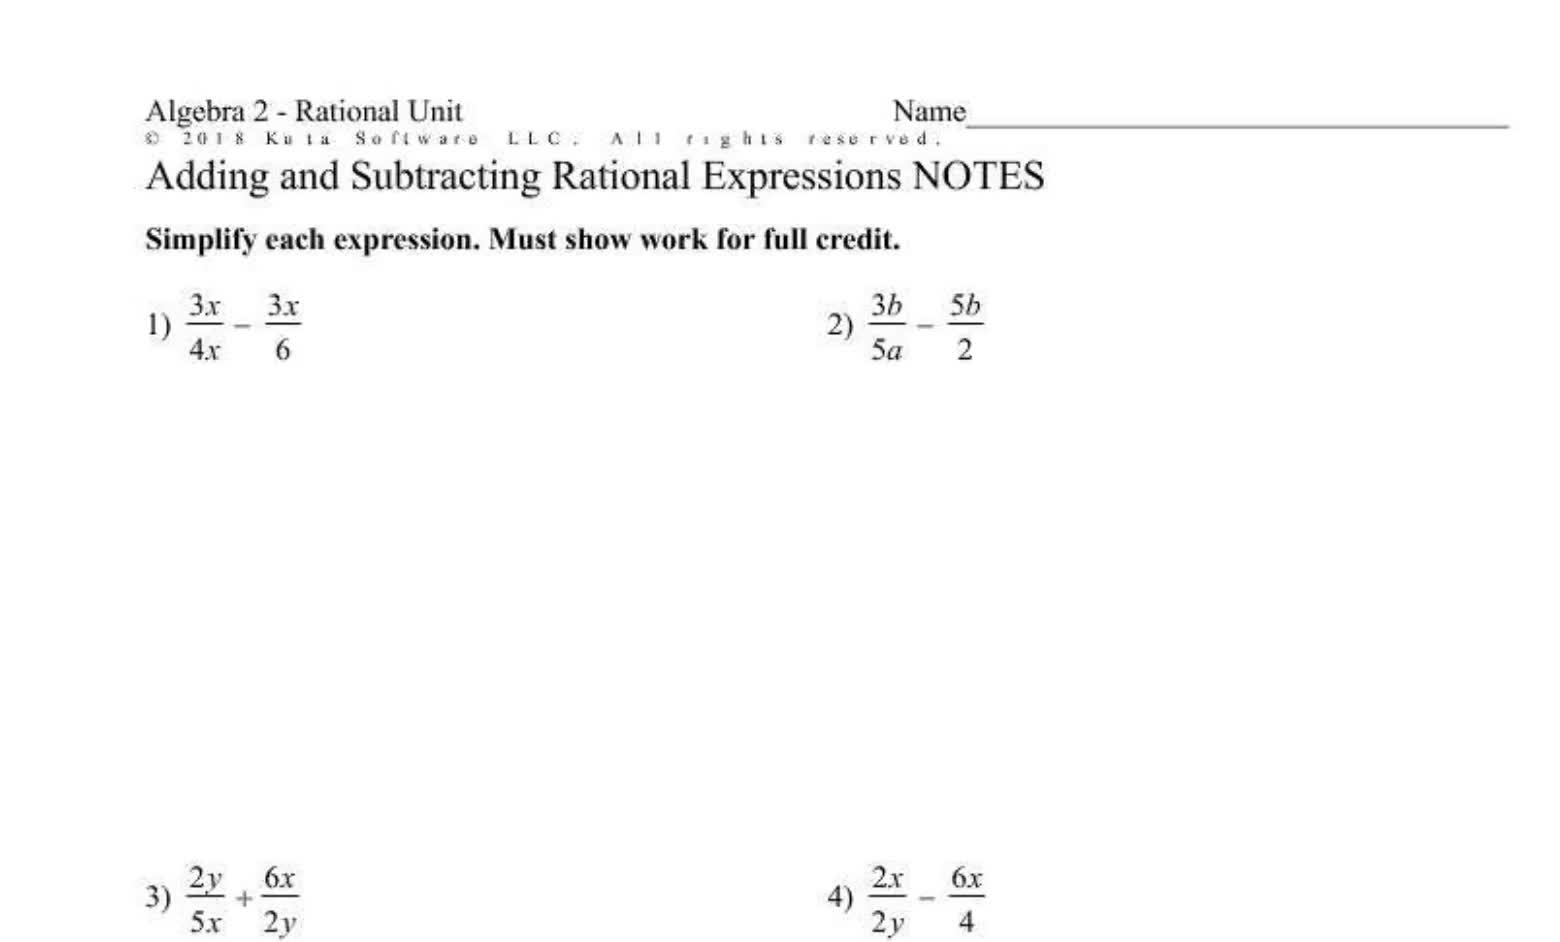 Add and Subtracting Rational Expressions (Seniors)